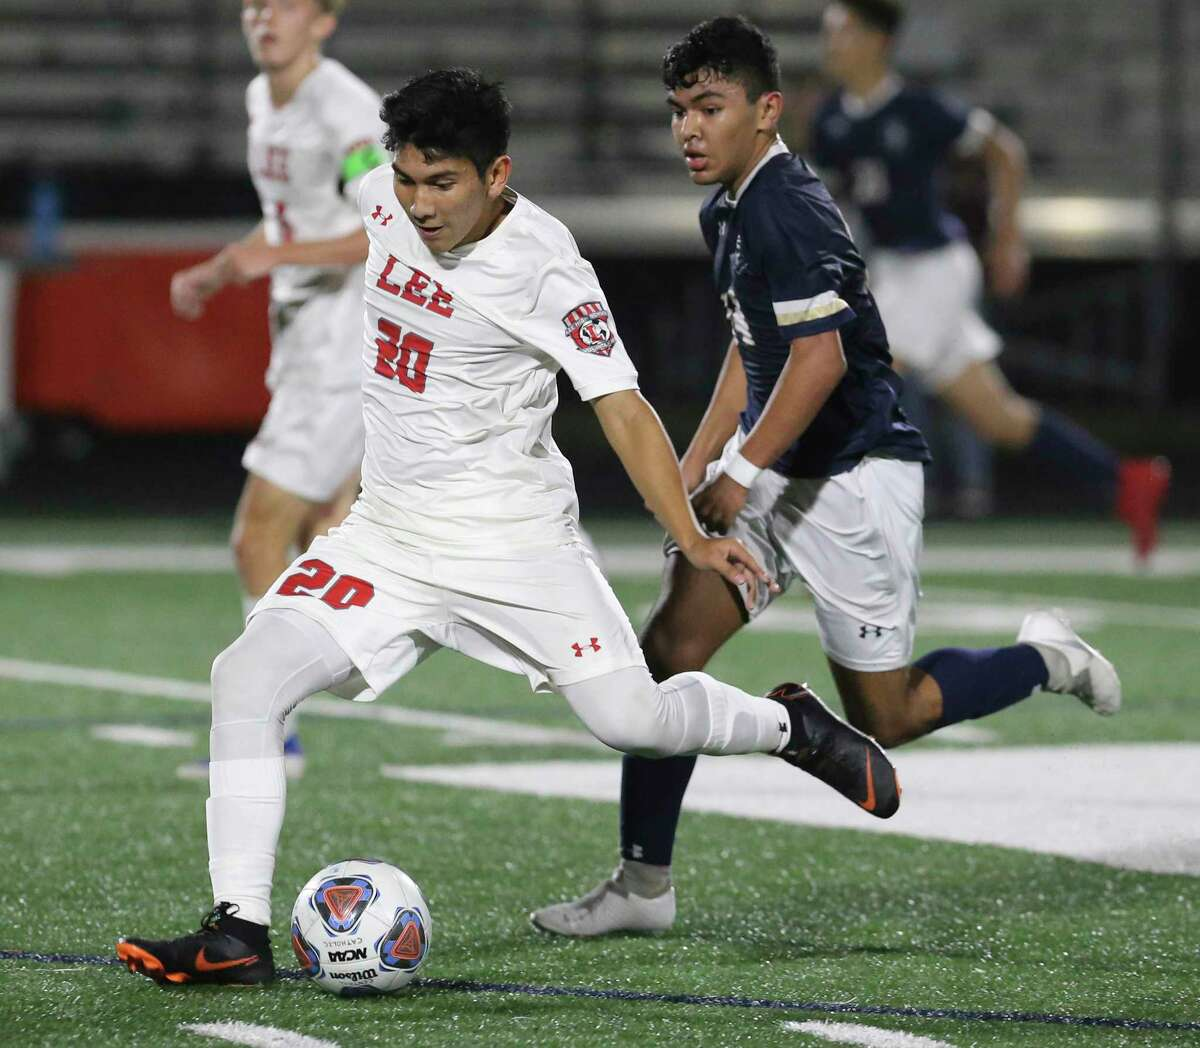 LEE's Efrain Cortes (20) passes the ball against Central Catholic's Bryan Jimenez (14) in boys soccer at Central Catholic on Tuesday, Jan. 14, 2020. LEE defeated Central Catholic, 1-0, to take the win between the two top rated high school teams.